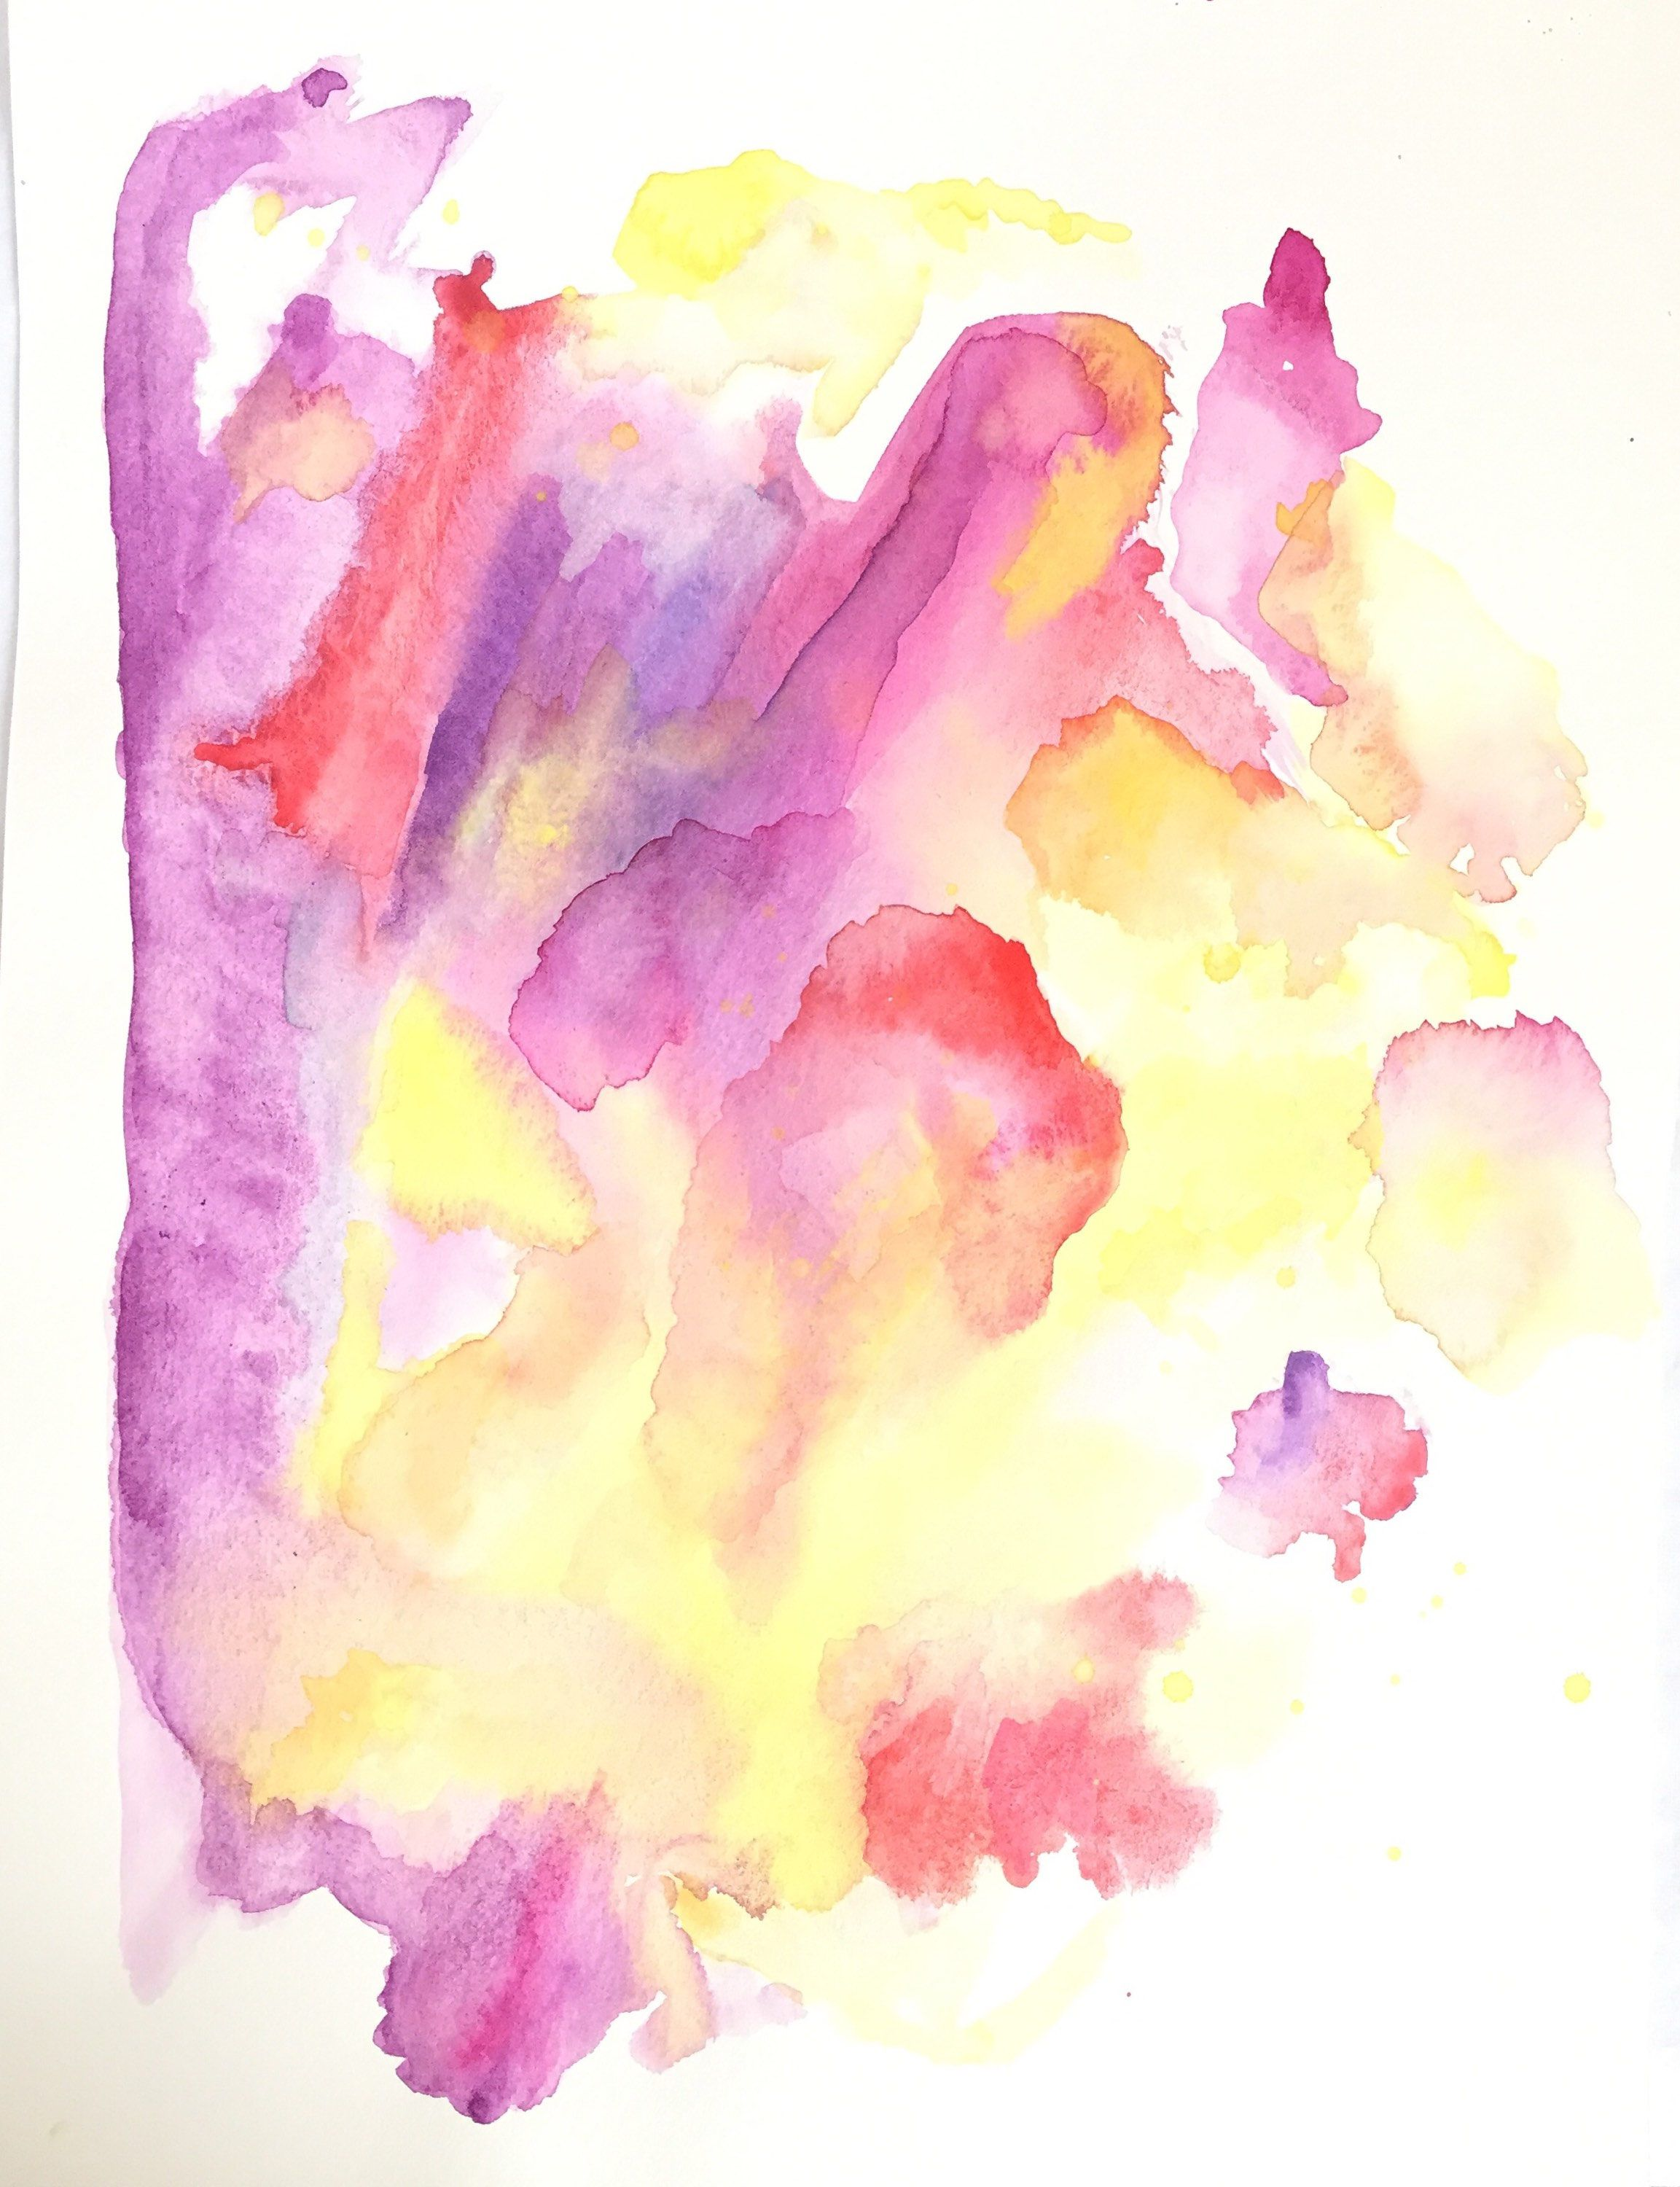 Saturated Pink Yellow Red In An Original Affordable Watercolor